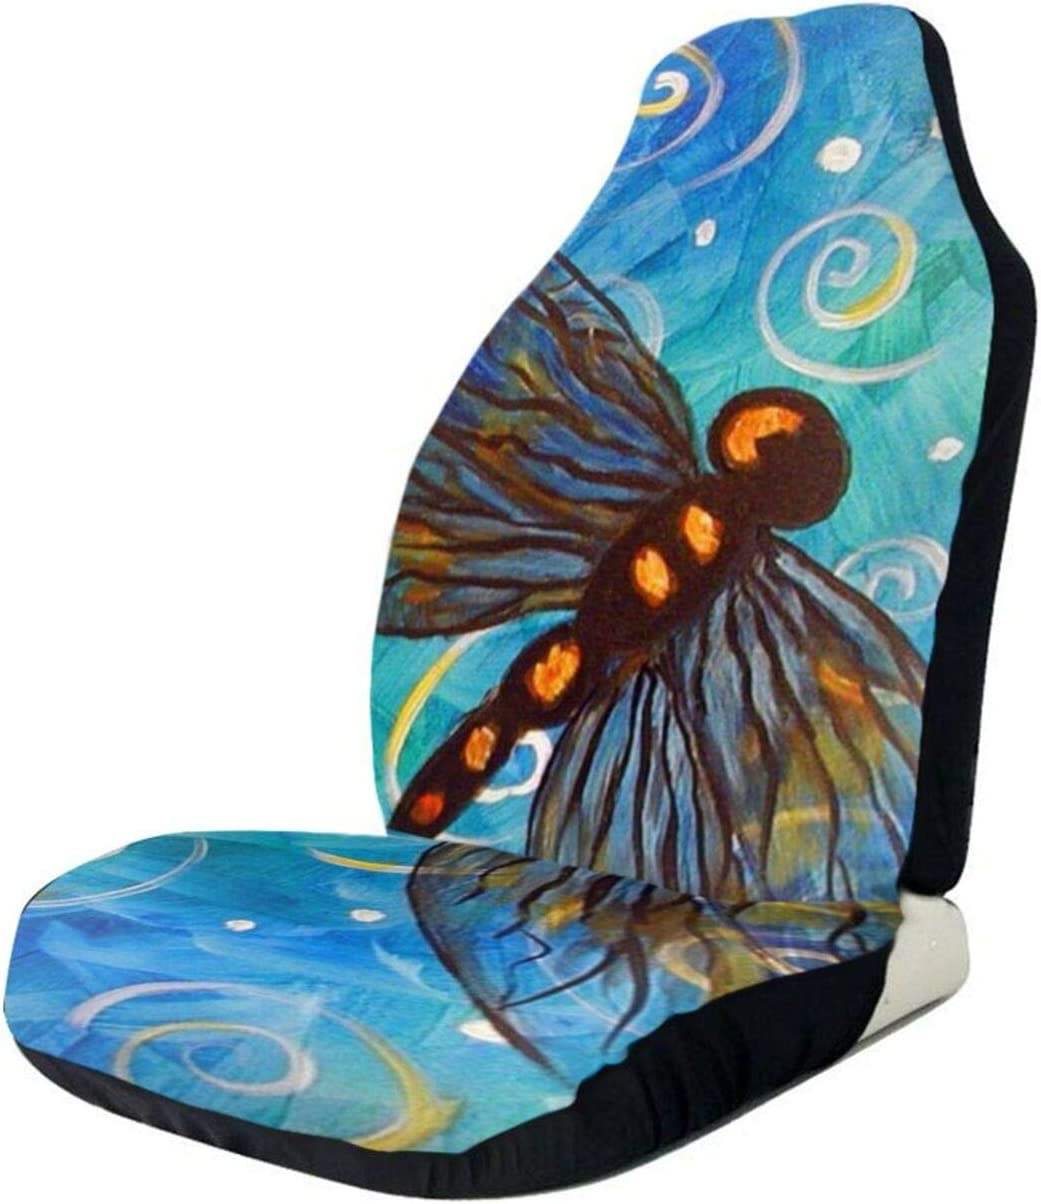 Dragonfly Oil Painting Peace Sign Car Vehi Limited Boston Mall time sale for Seat Front Covers